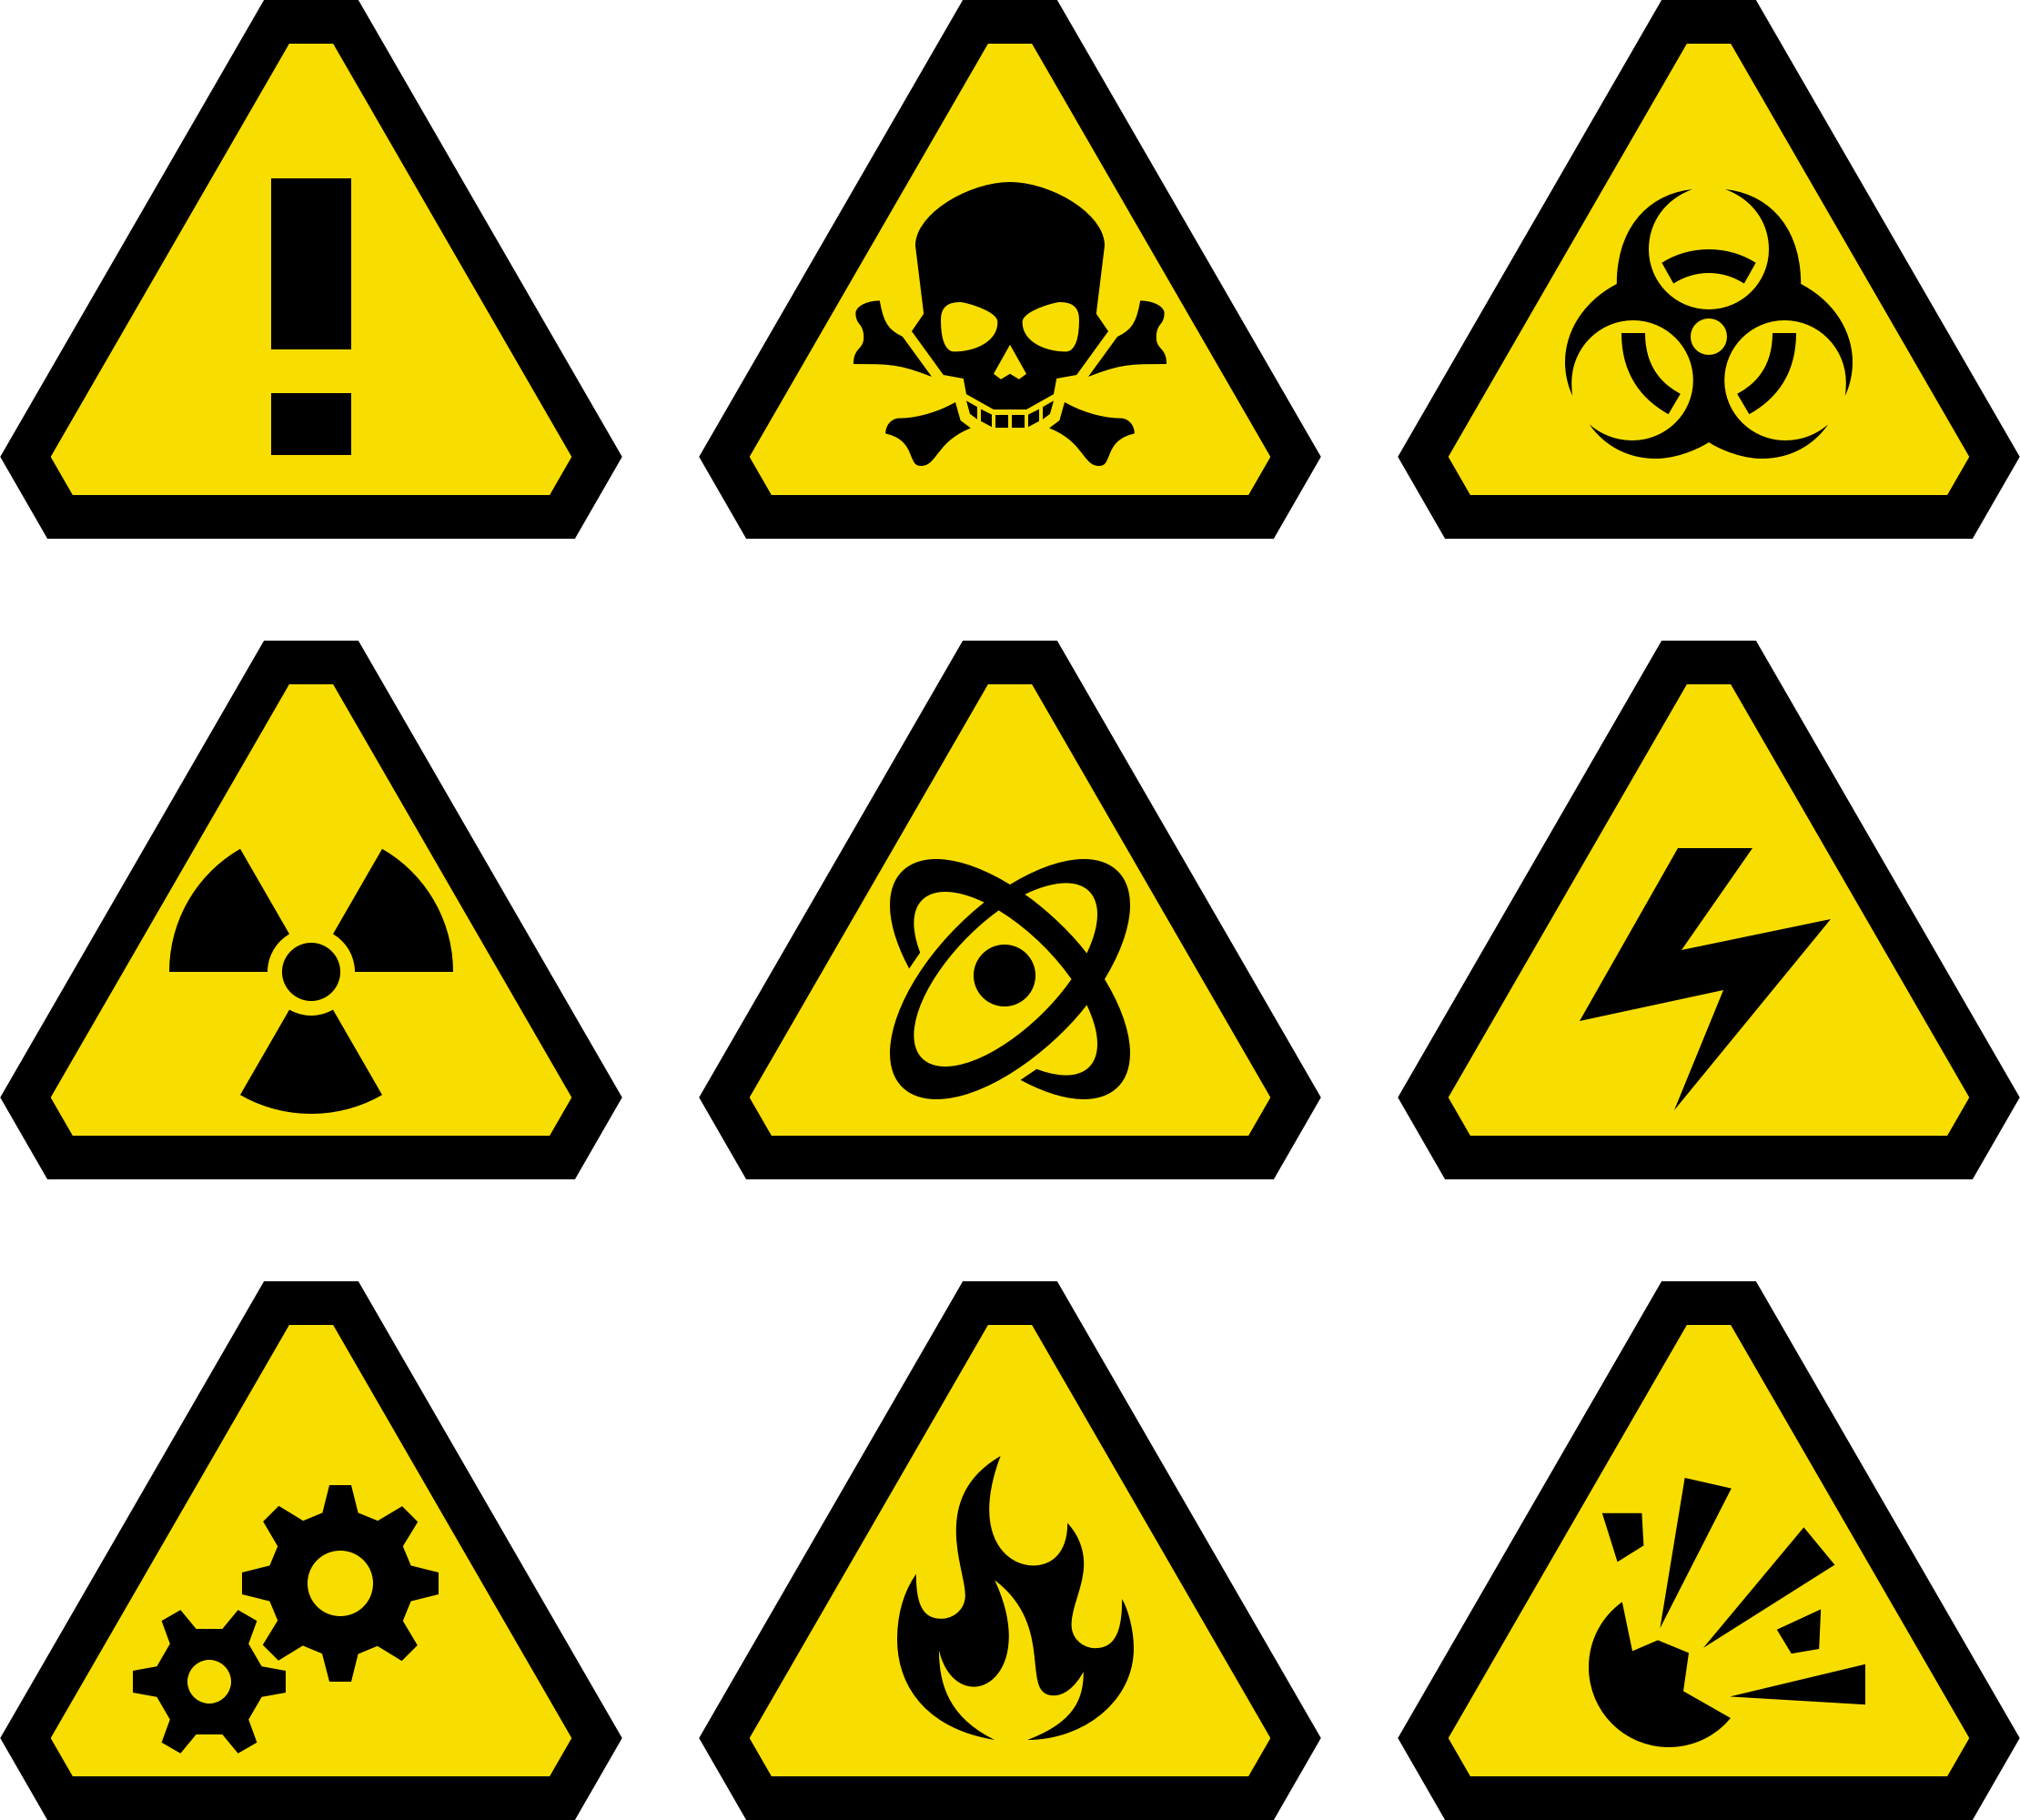 Emergency clipart warning symbol. Image for free explosion